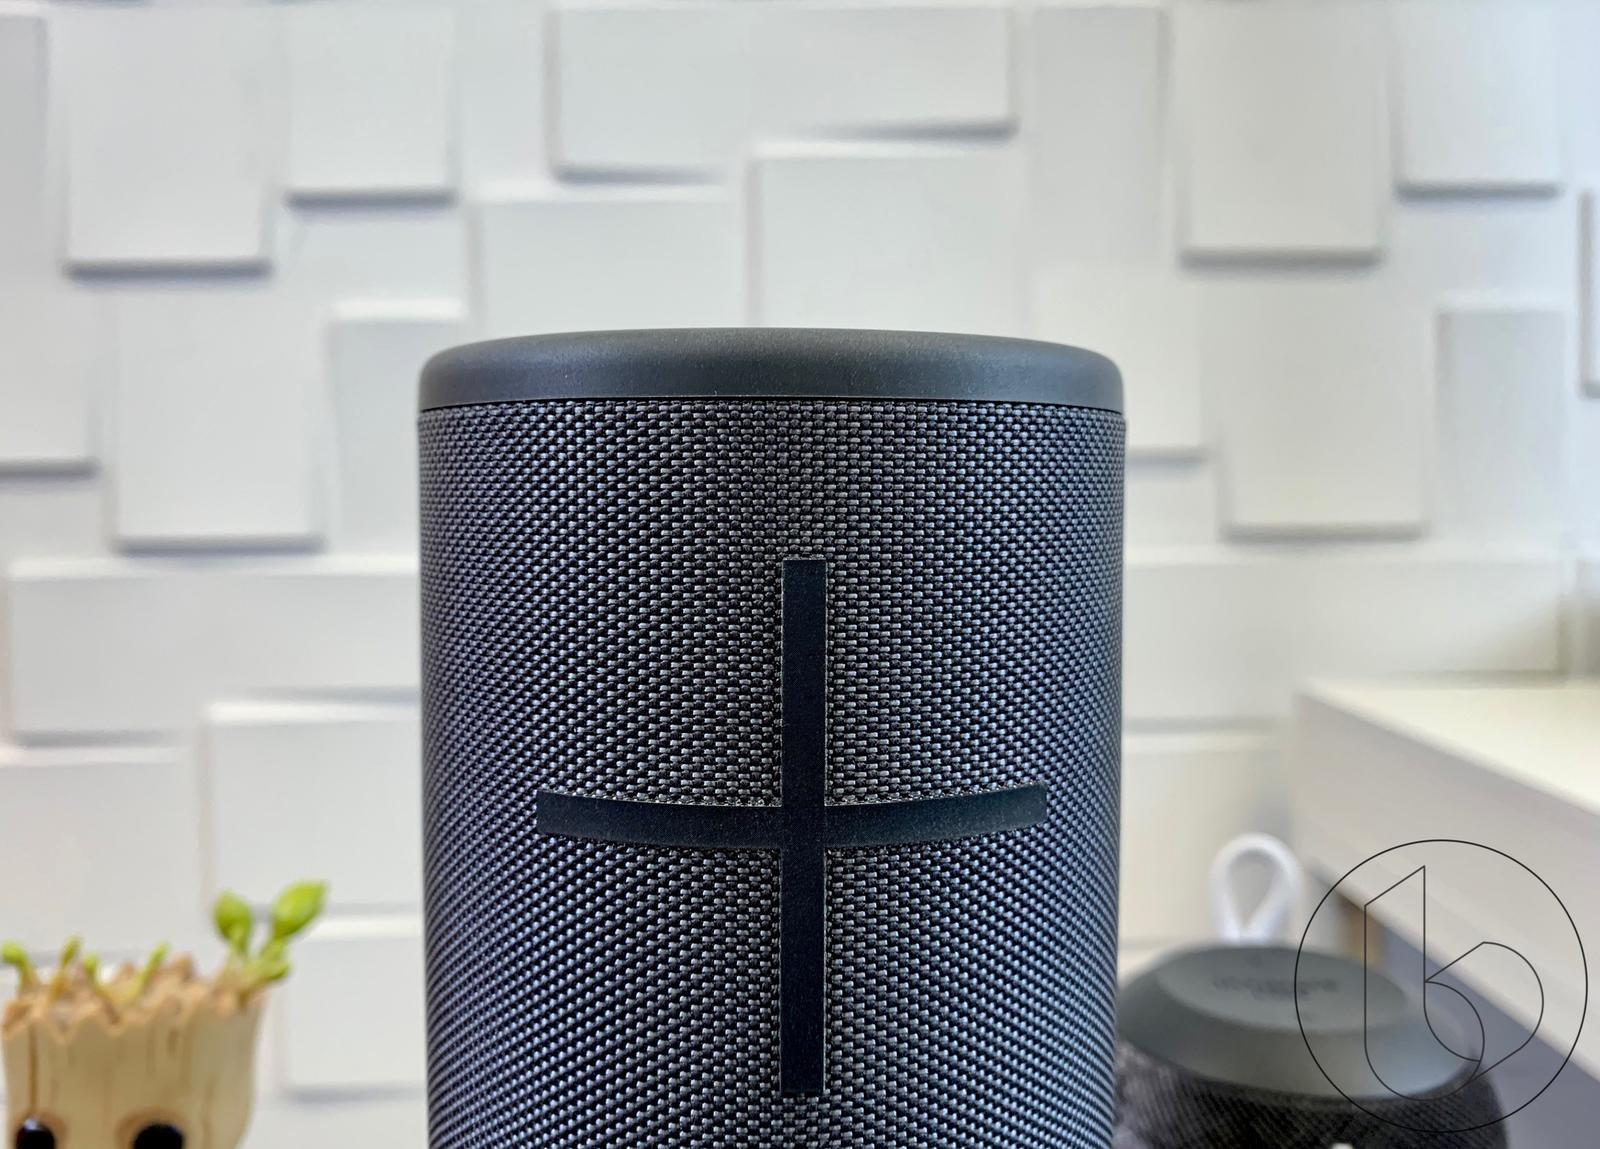 MegaBoom 3 review: UE Perfects its Bluetooth Speaker   TechnoBuffalo